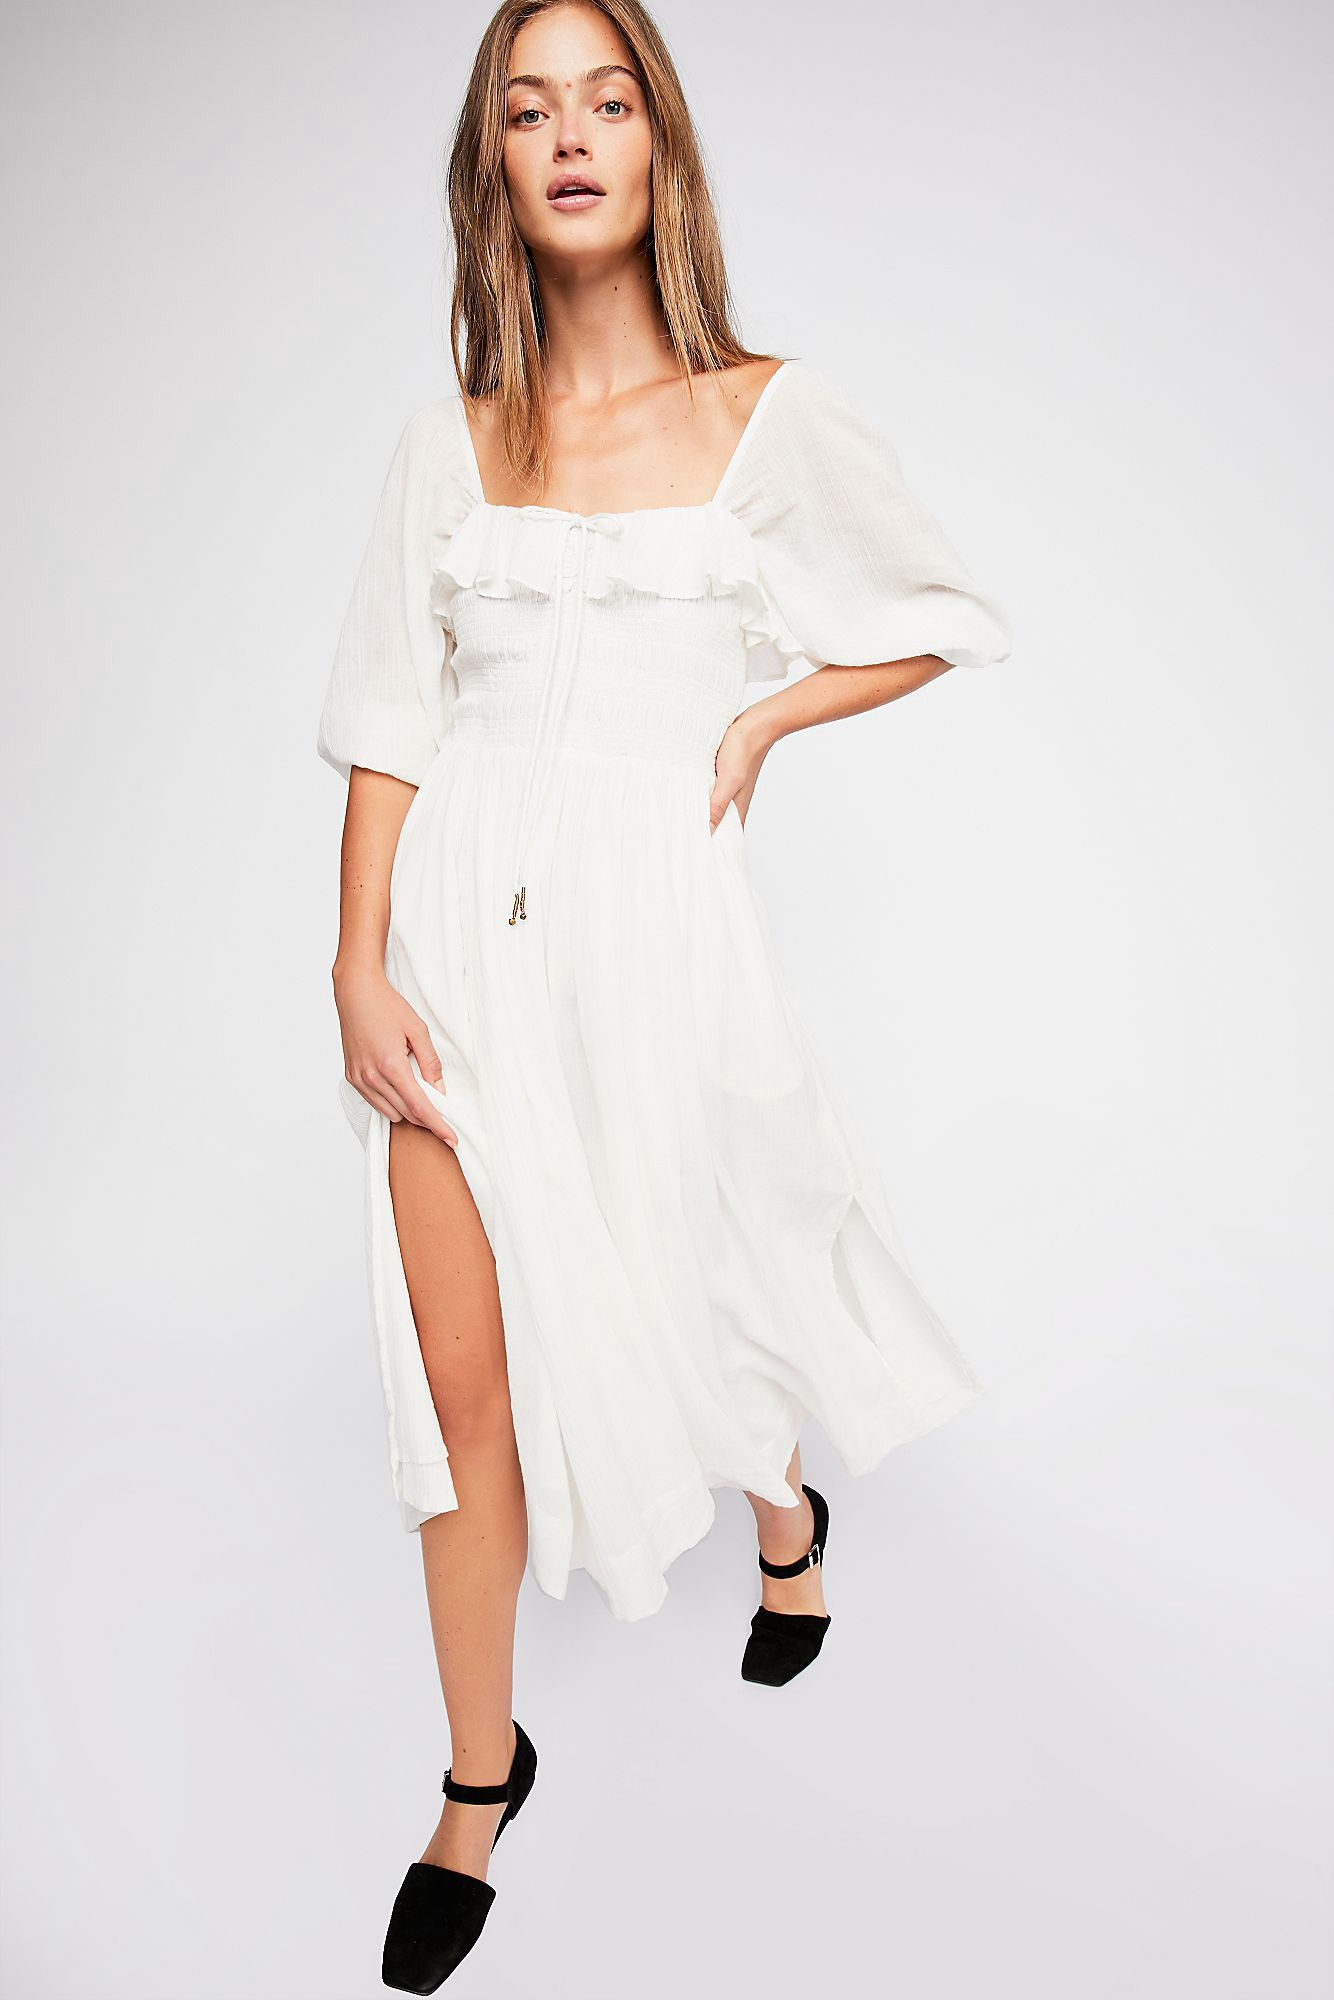 1490959cd2 Oasis Midi Dress by Free People in 2019